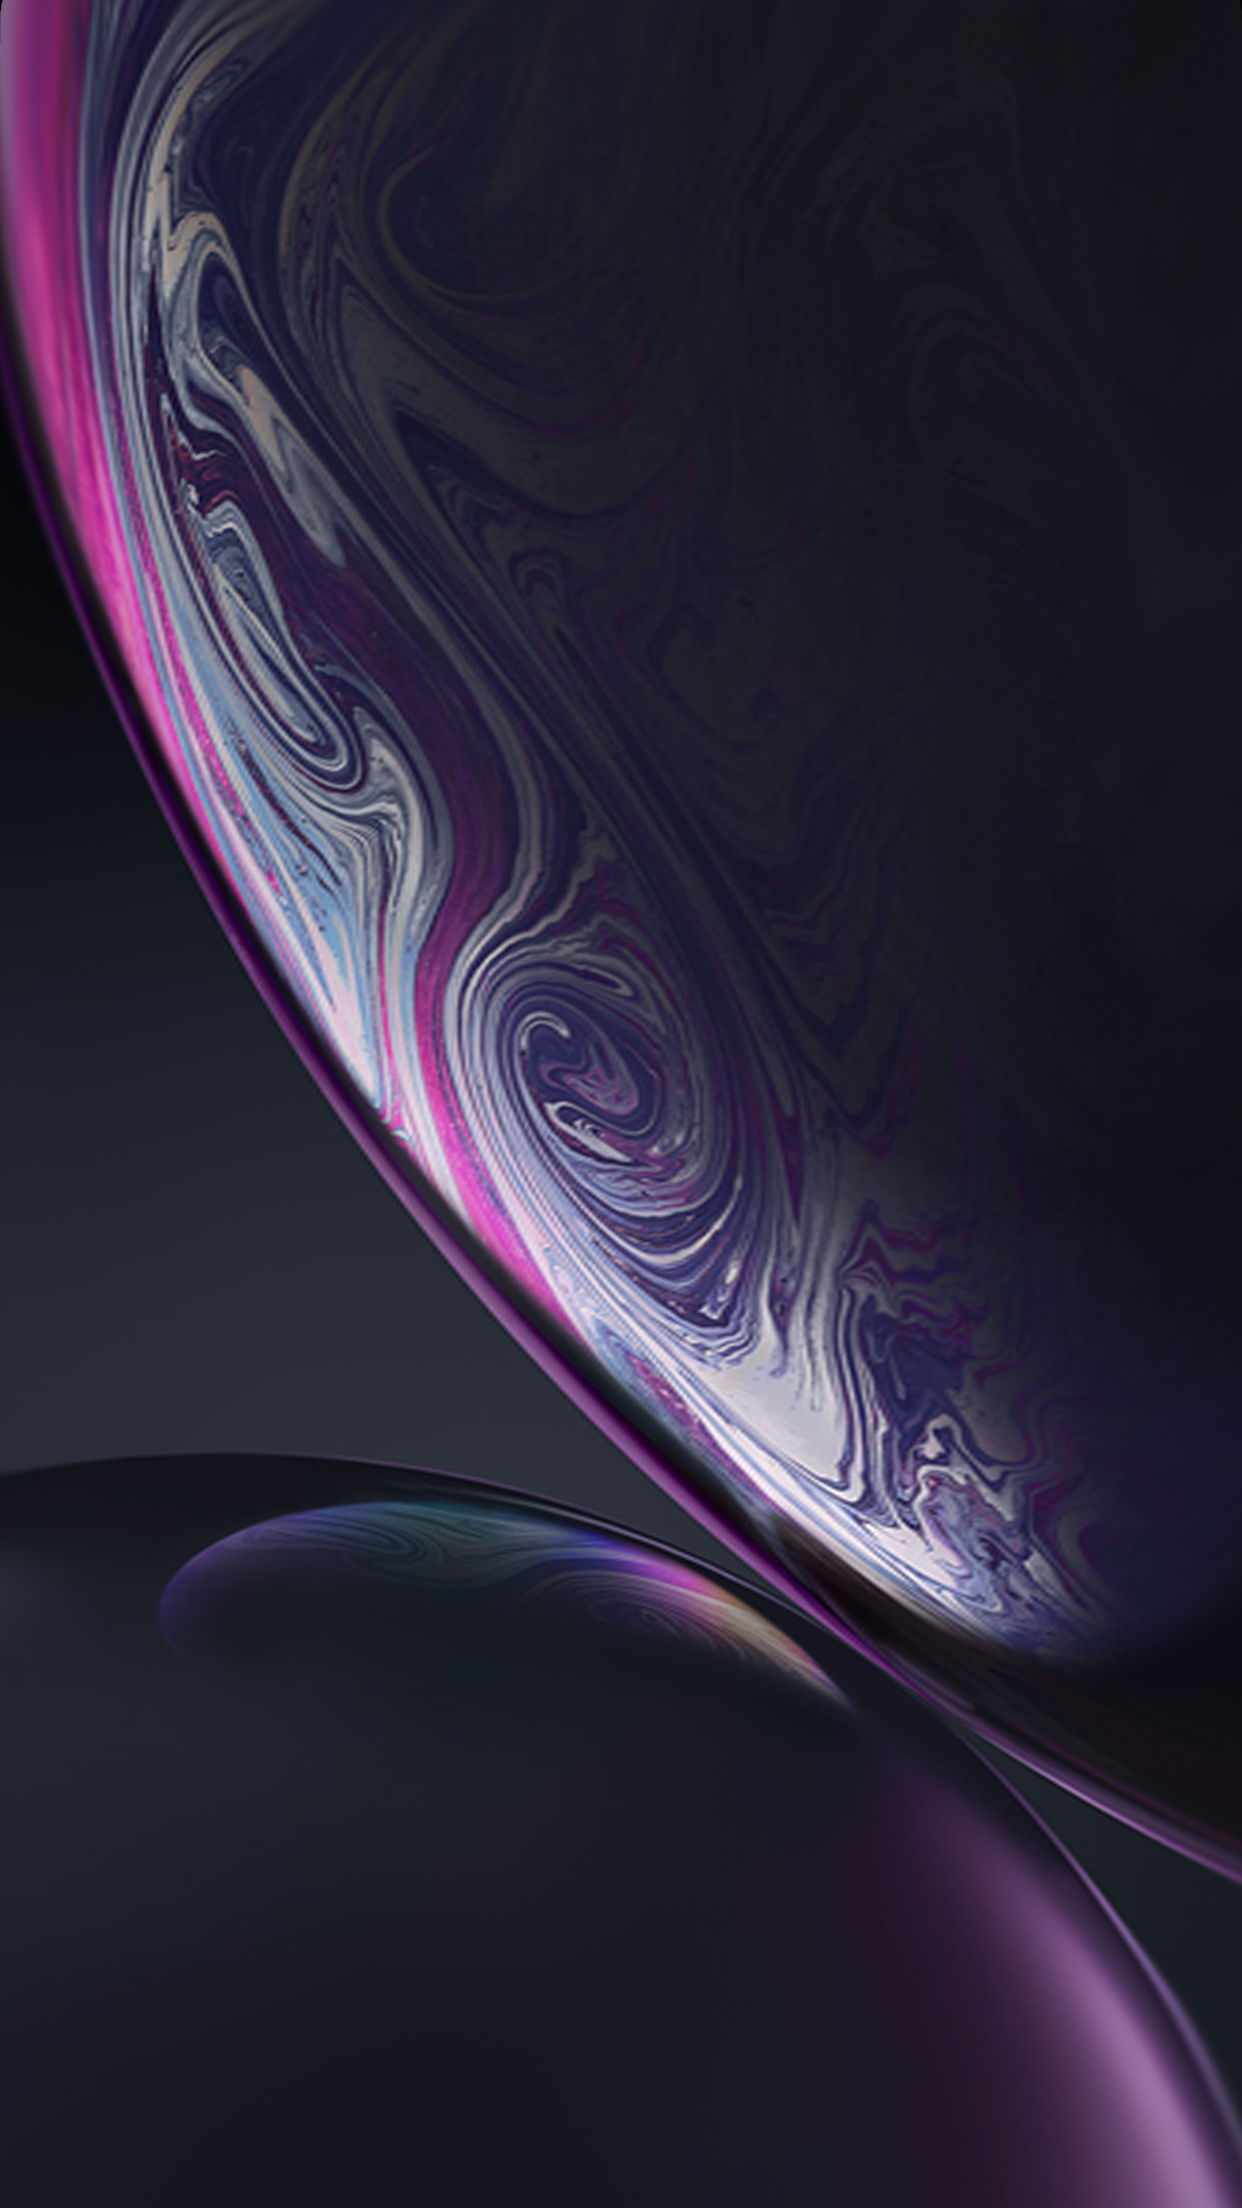 44+ iPhone XS 4k Wallpapers on WallpaperSafari